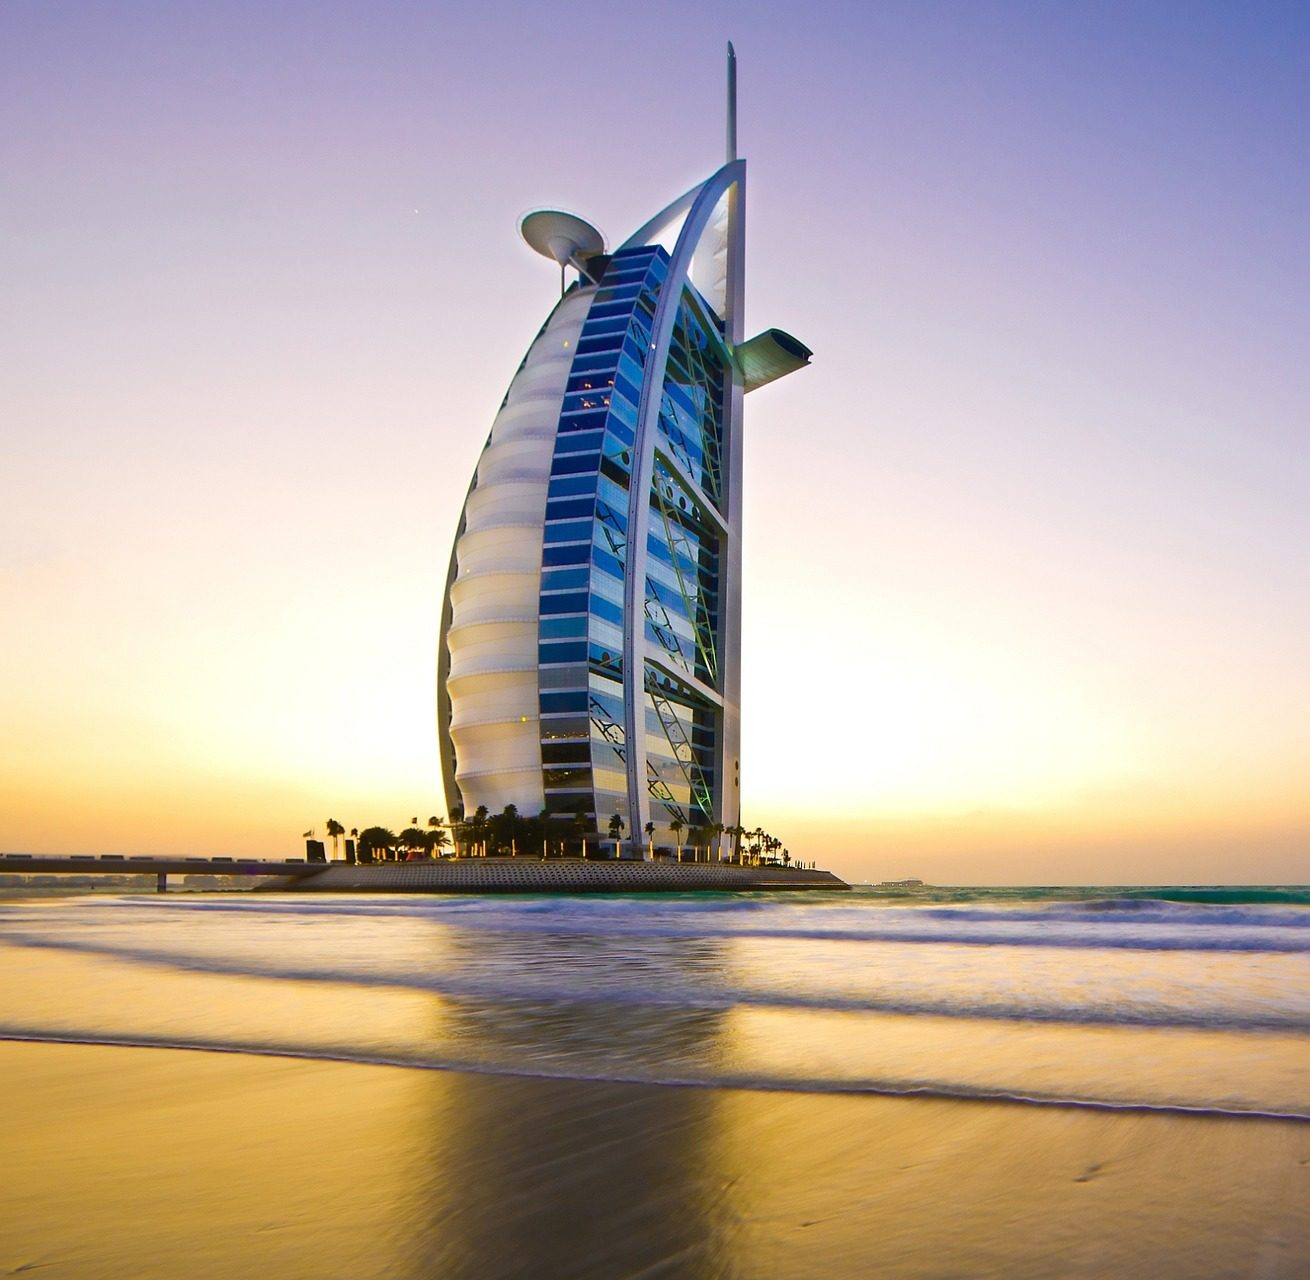 Destination Calendar Burj Al Arab 6* Hotel Dubai Middle East